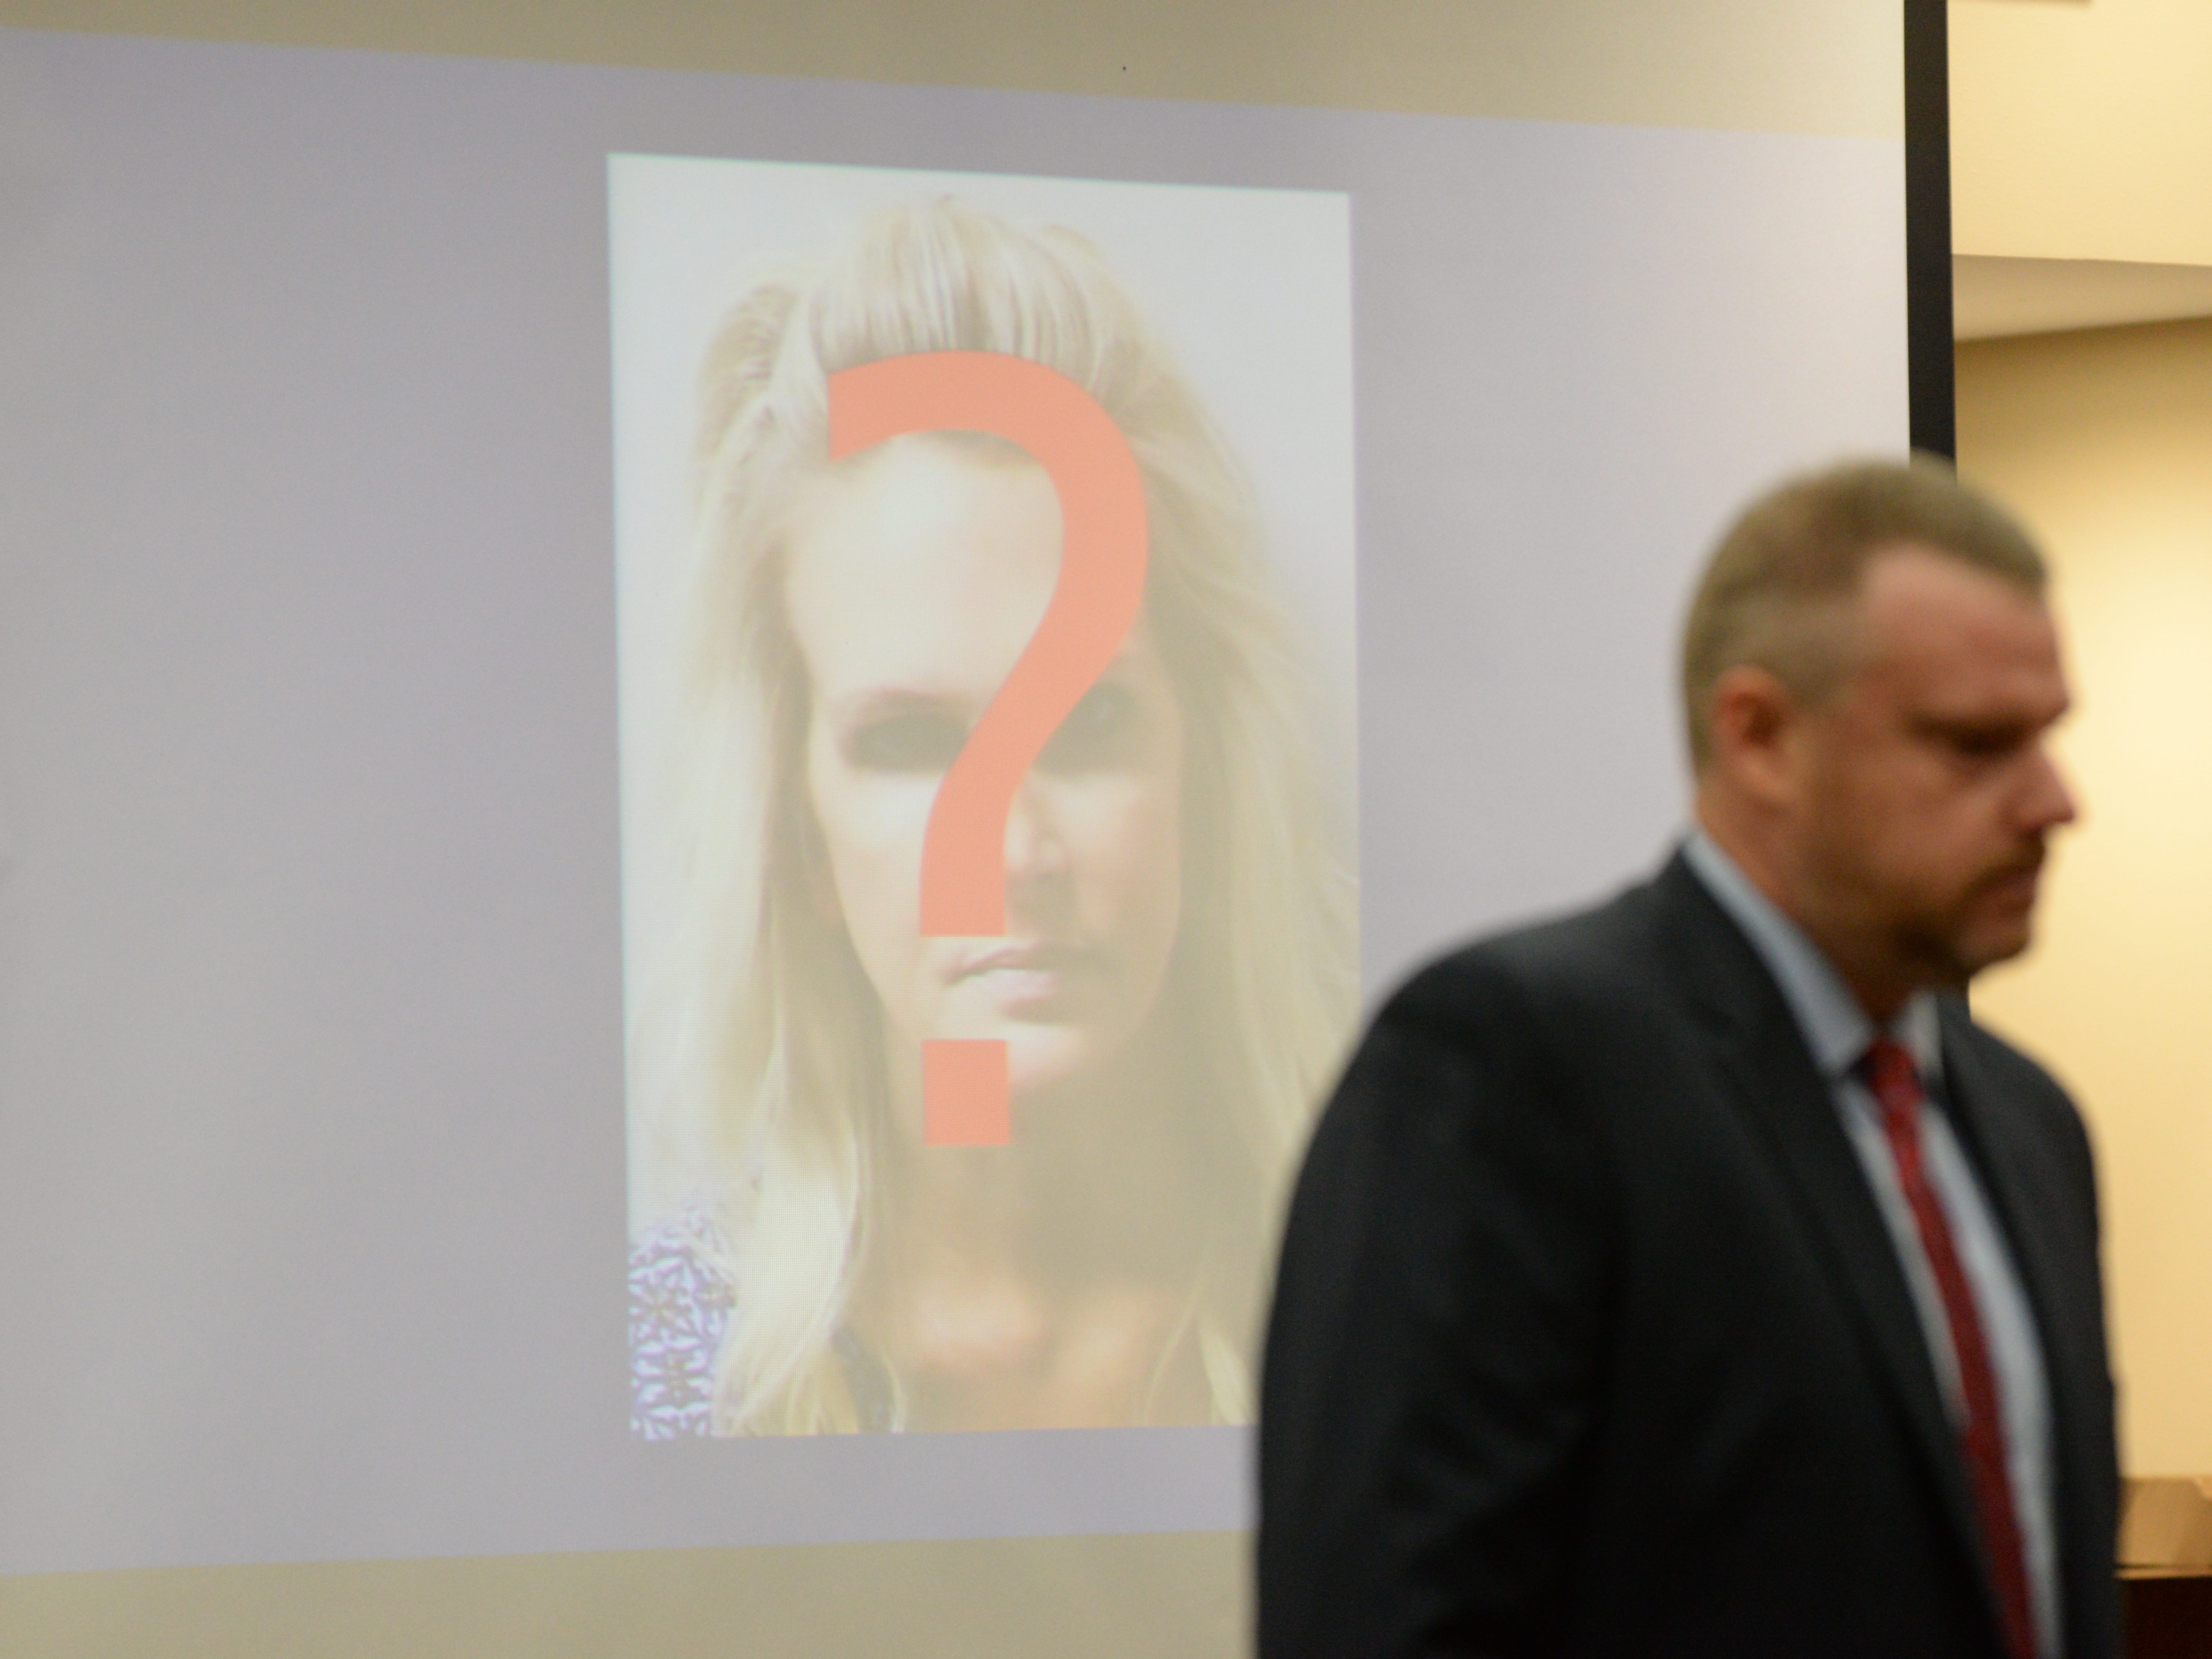 Assistant State Attorney Jon Fuchs displays the mugshot of Denise Williams during his closing arguments in the trial of Denise Williams for the murder of her husband Mike Williams at the Leon County Courthouse Friday, Dec. 14, 2018.